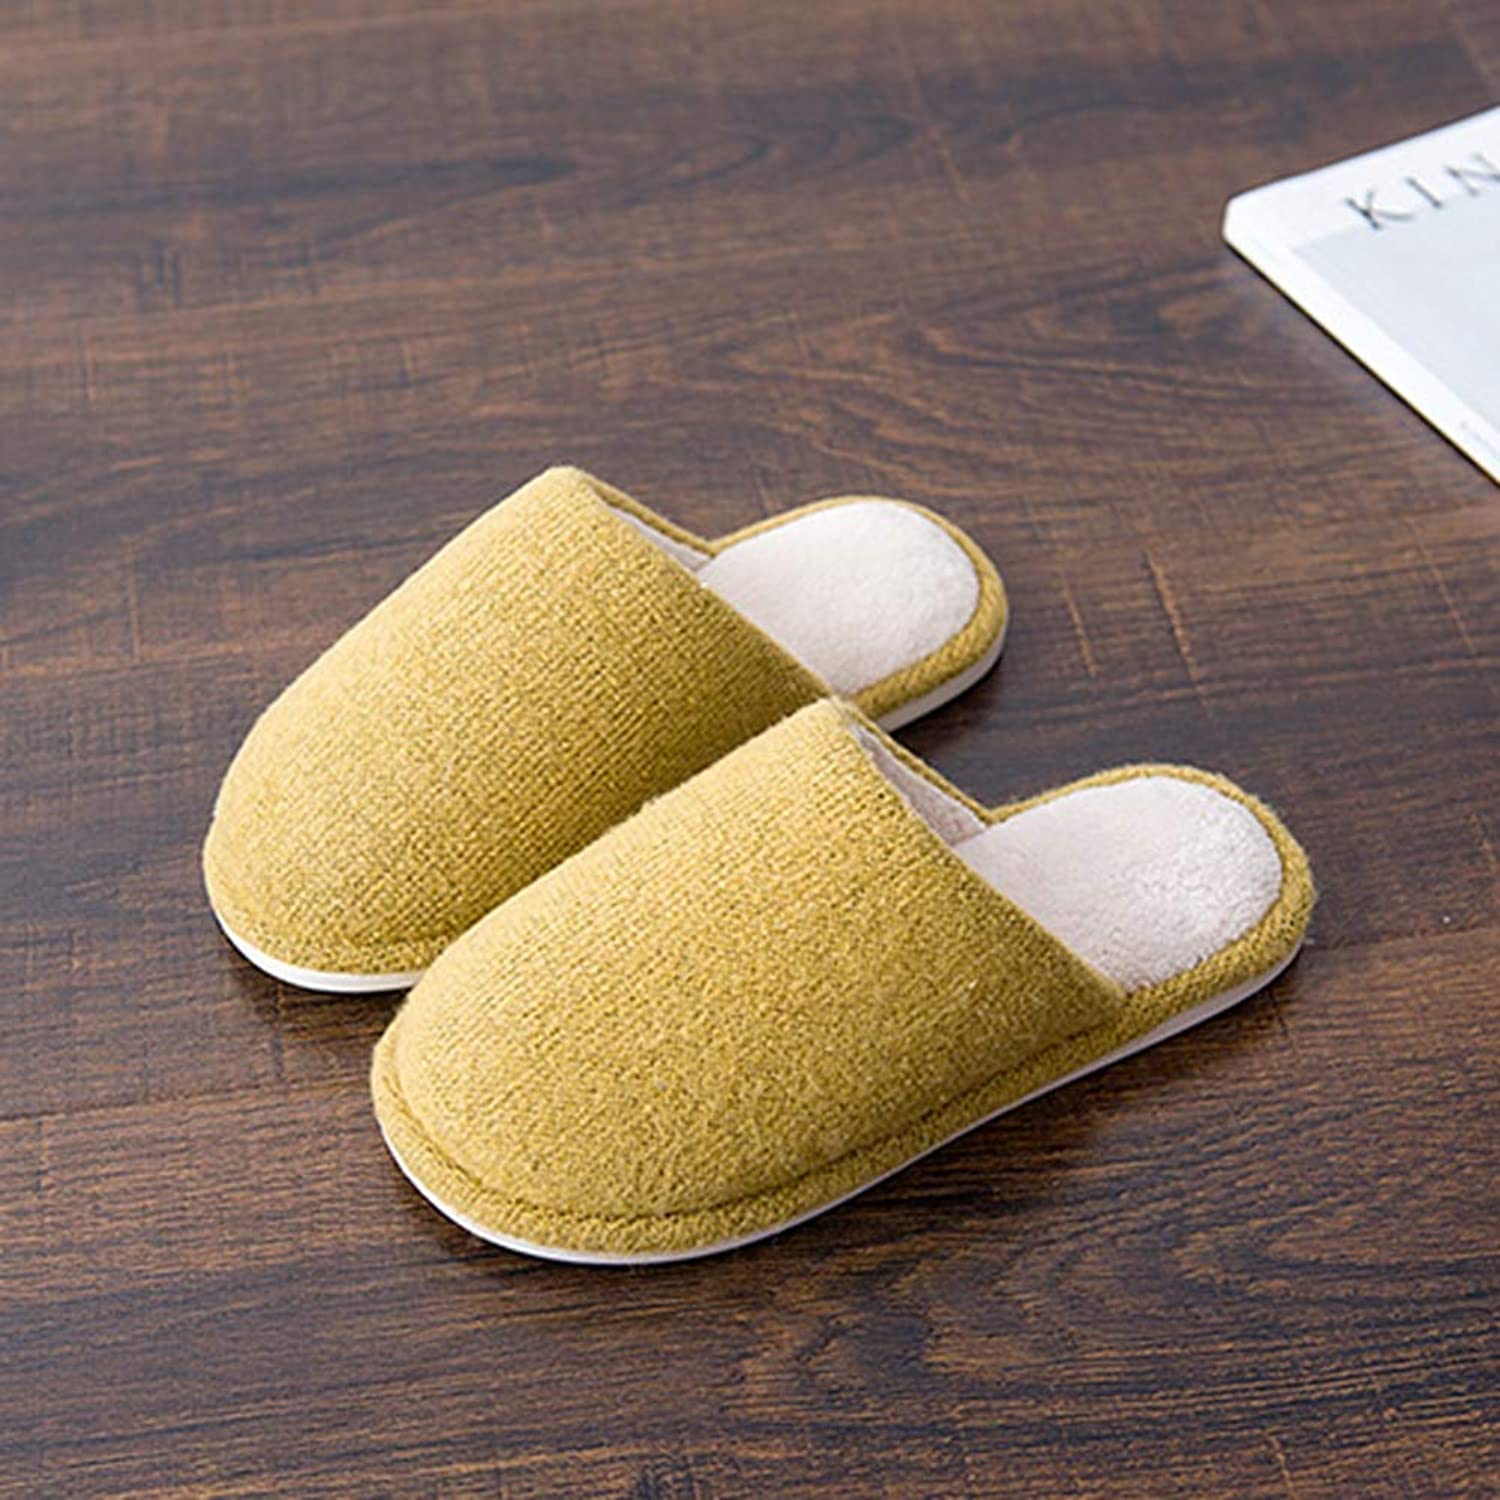 Flip Flop Autumn and Winter Simple Knitting Wool Home Comfortable Non-Slip Cotton Slippers Wear Resistant (color   Yellow, Size   38-39yards)